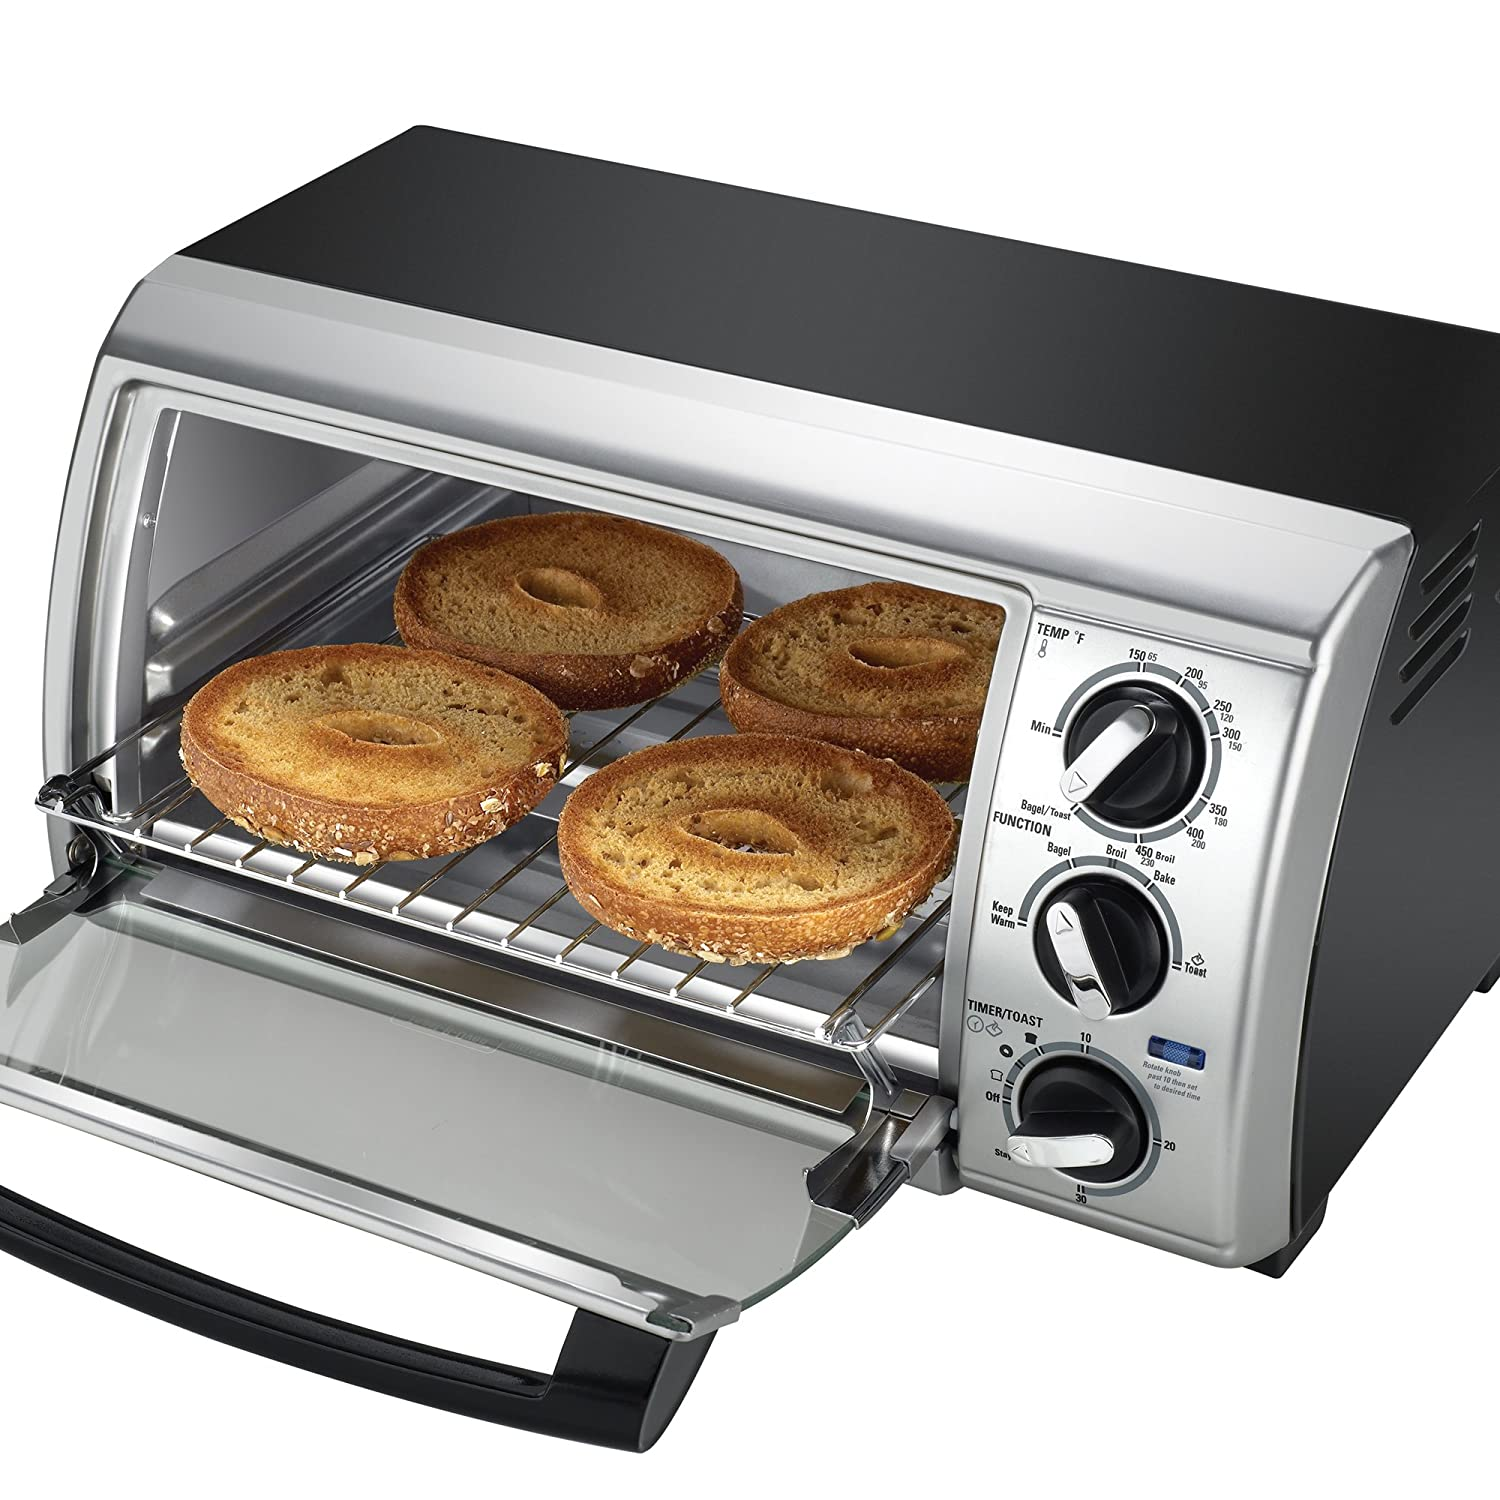 electric kitchen hanabishi dsc oven sale a toaster user and steel for stainless heo